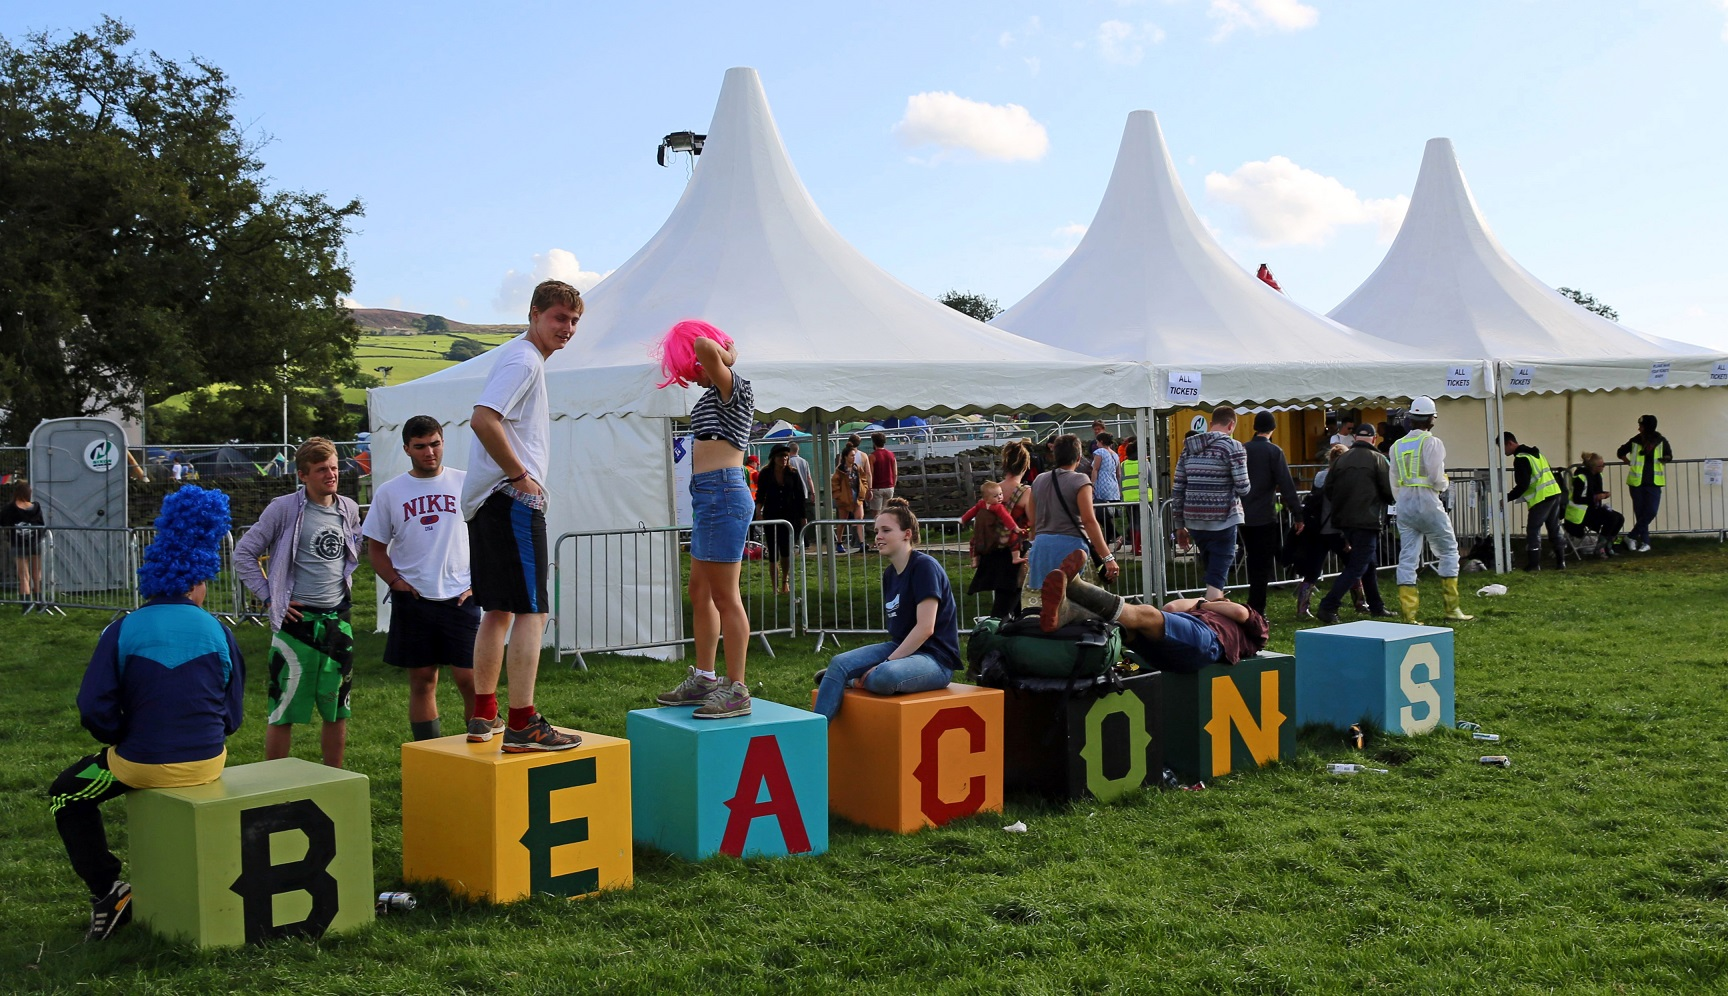 Beacons Festival – 16th to 18th August 2013